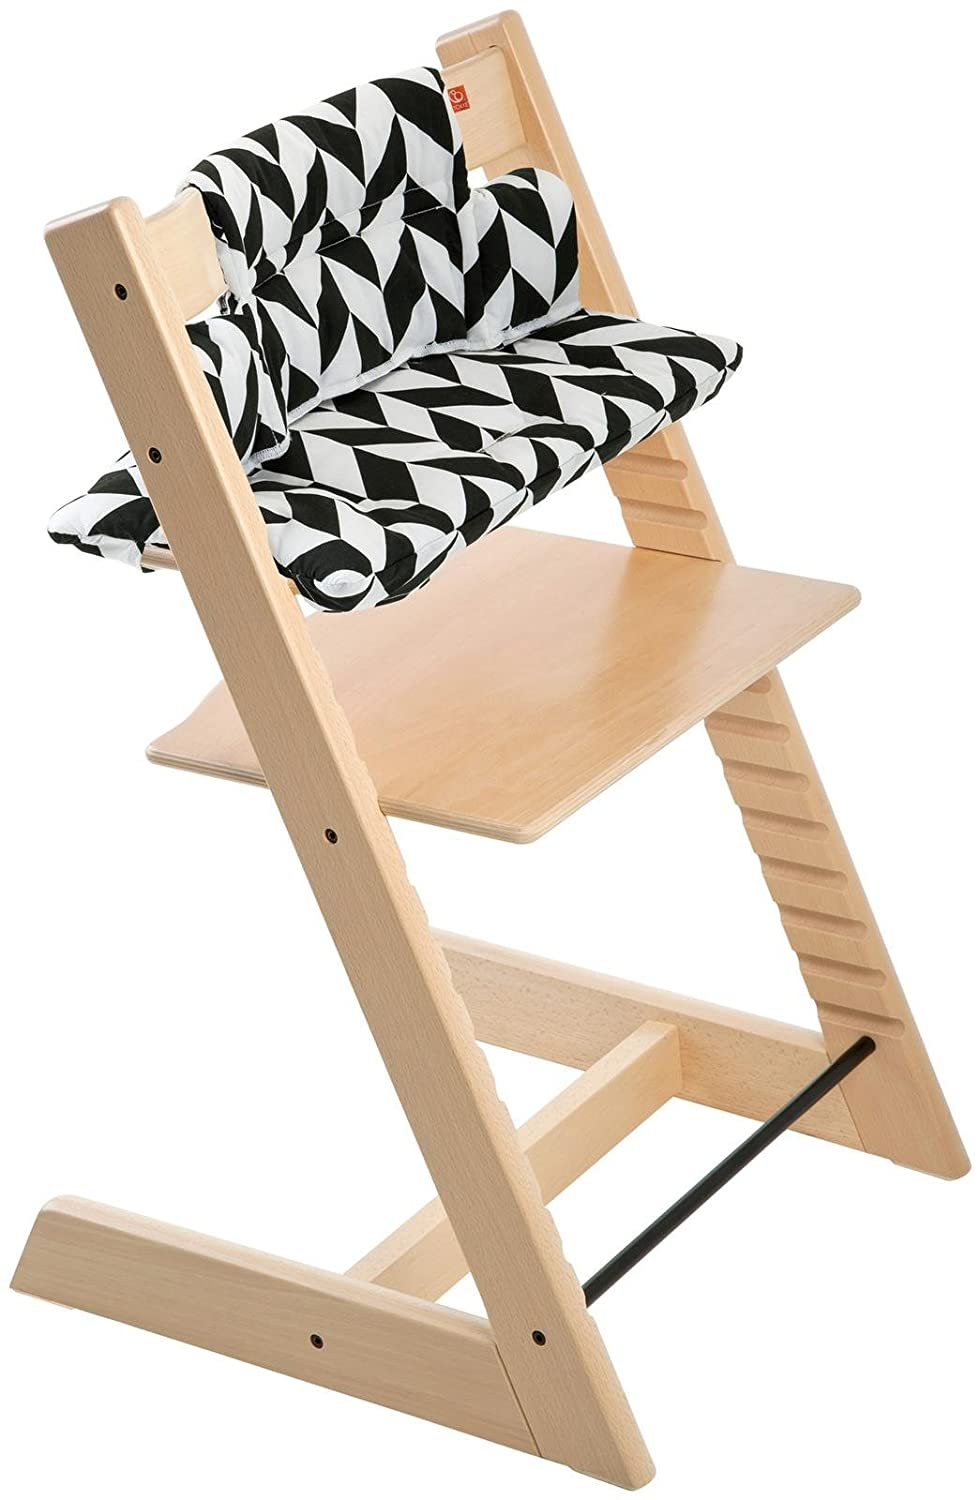 Stokke Tripp Trapp Cushion, Grey Star - Chair Not Included 146026